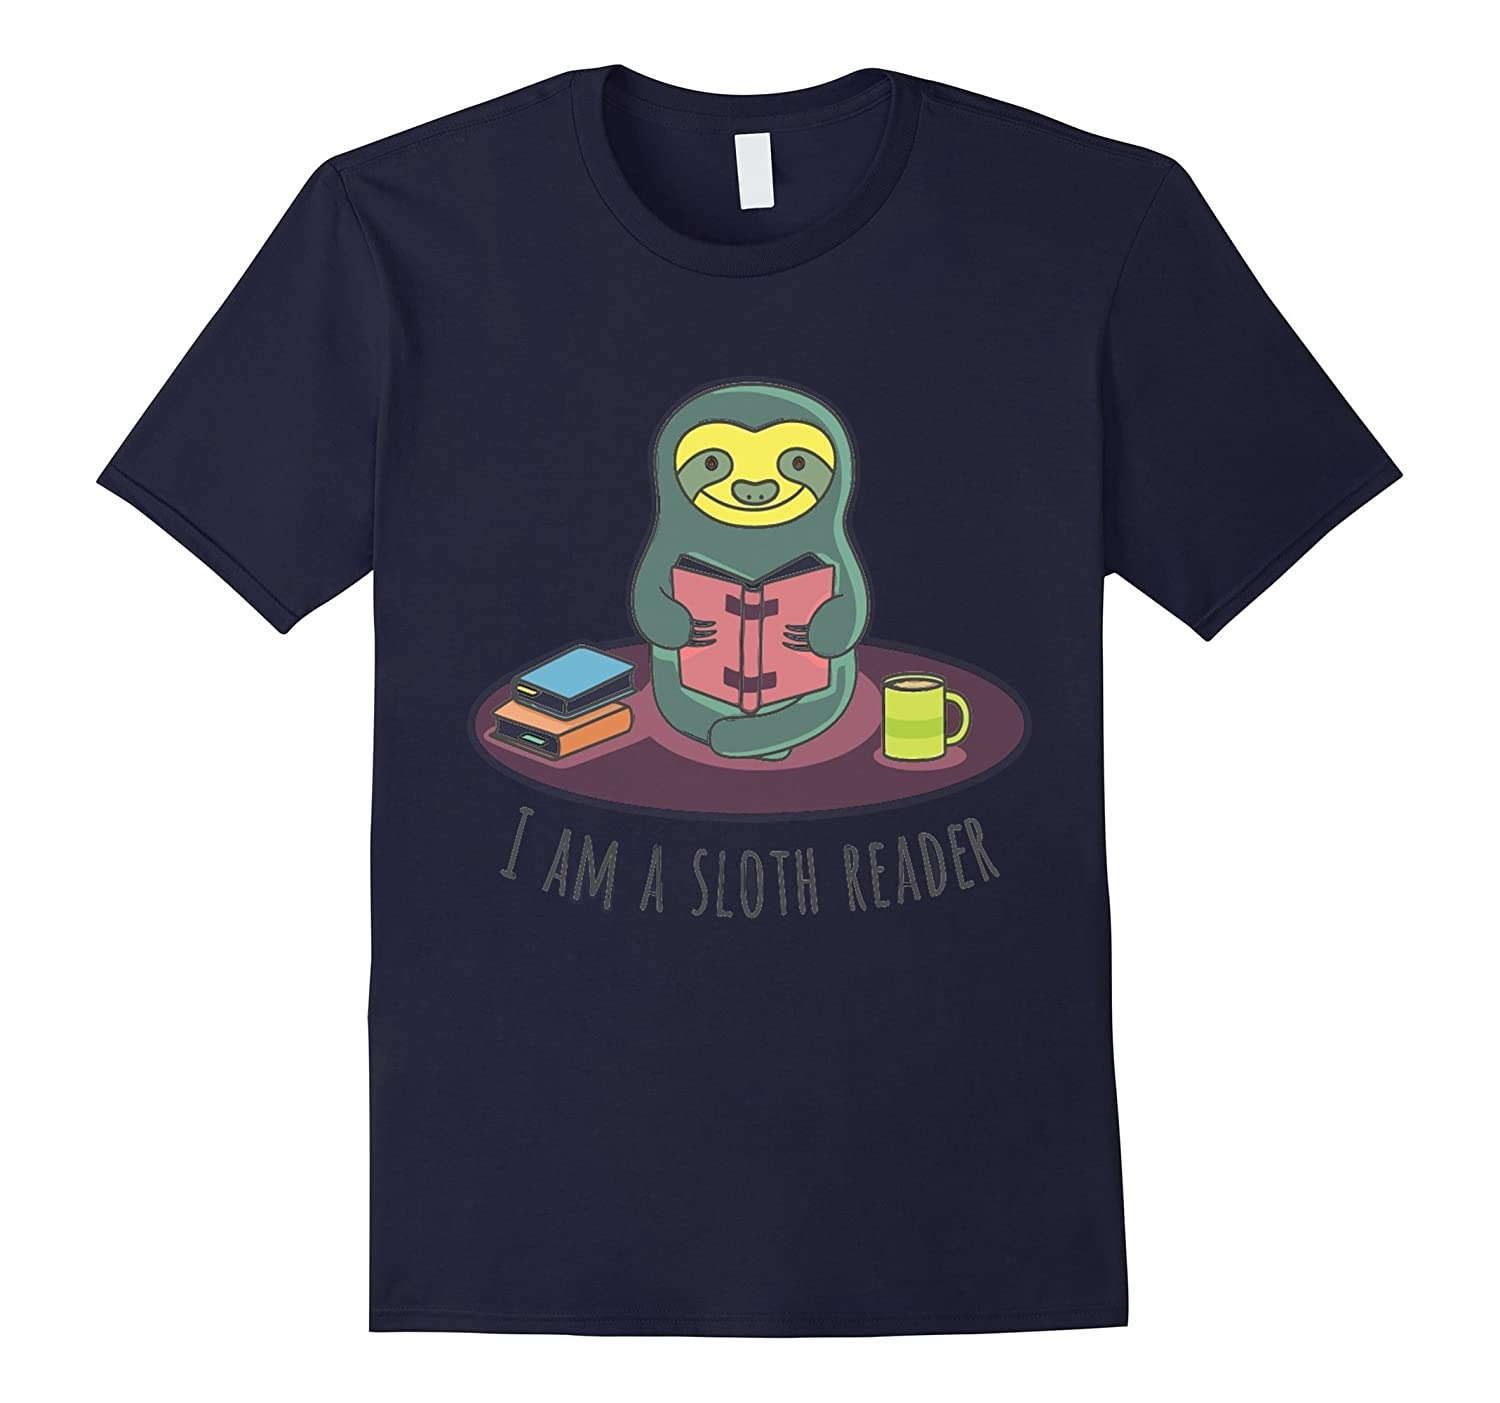 I am a sloth reader Tshirt-TD